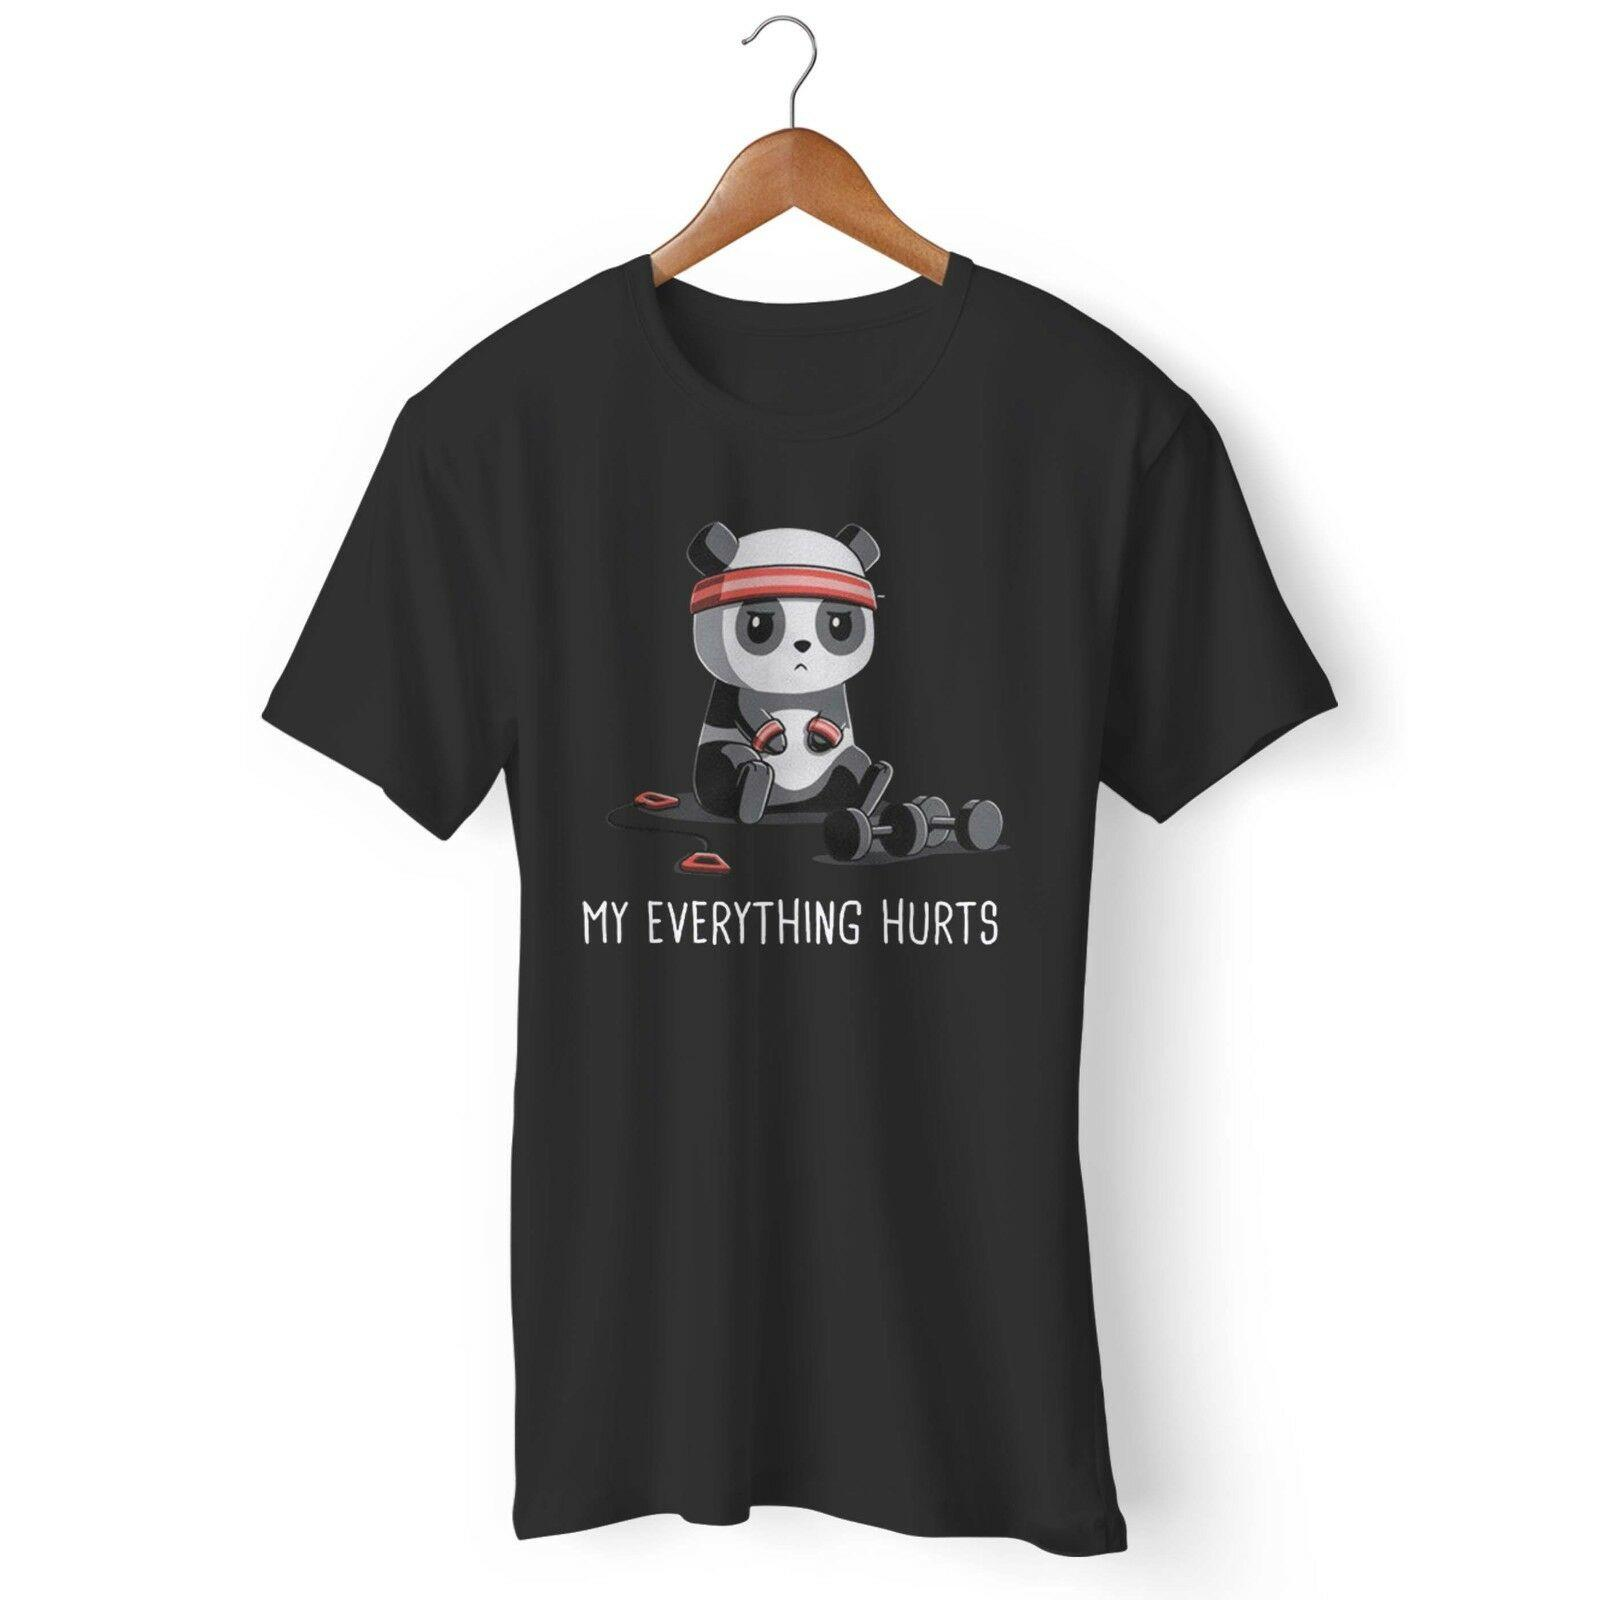 ee16c9c54 My Everything Hurts Man's / Woman's T-ShirtFunny free shipping Unisex  Casual Tshirt top